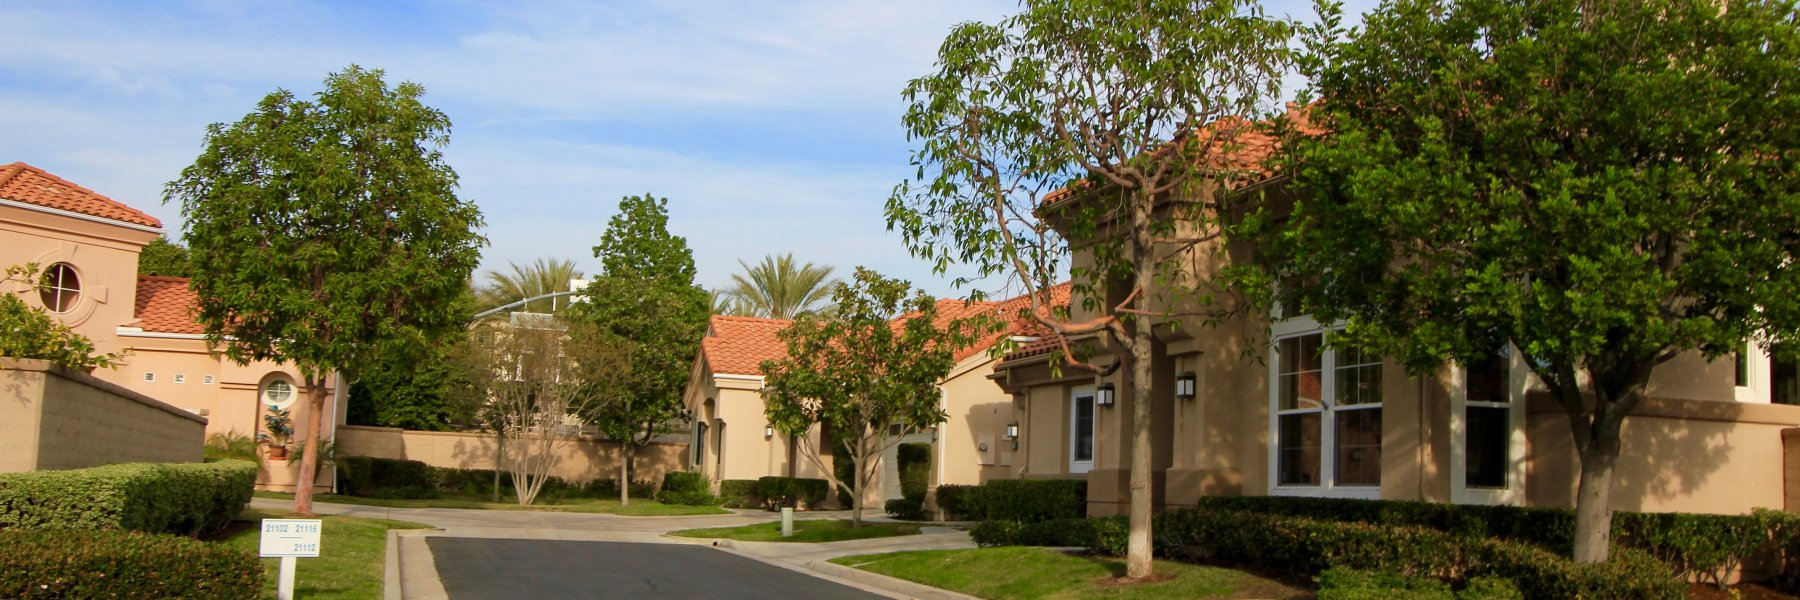 Palmia Terraces is a community of homes in Mission Viejo California